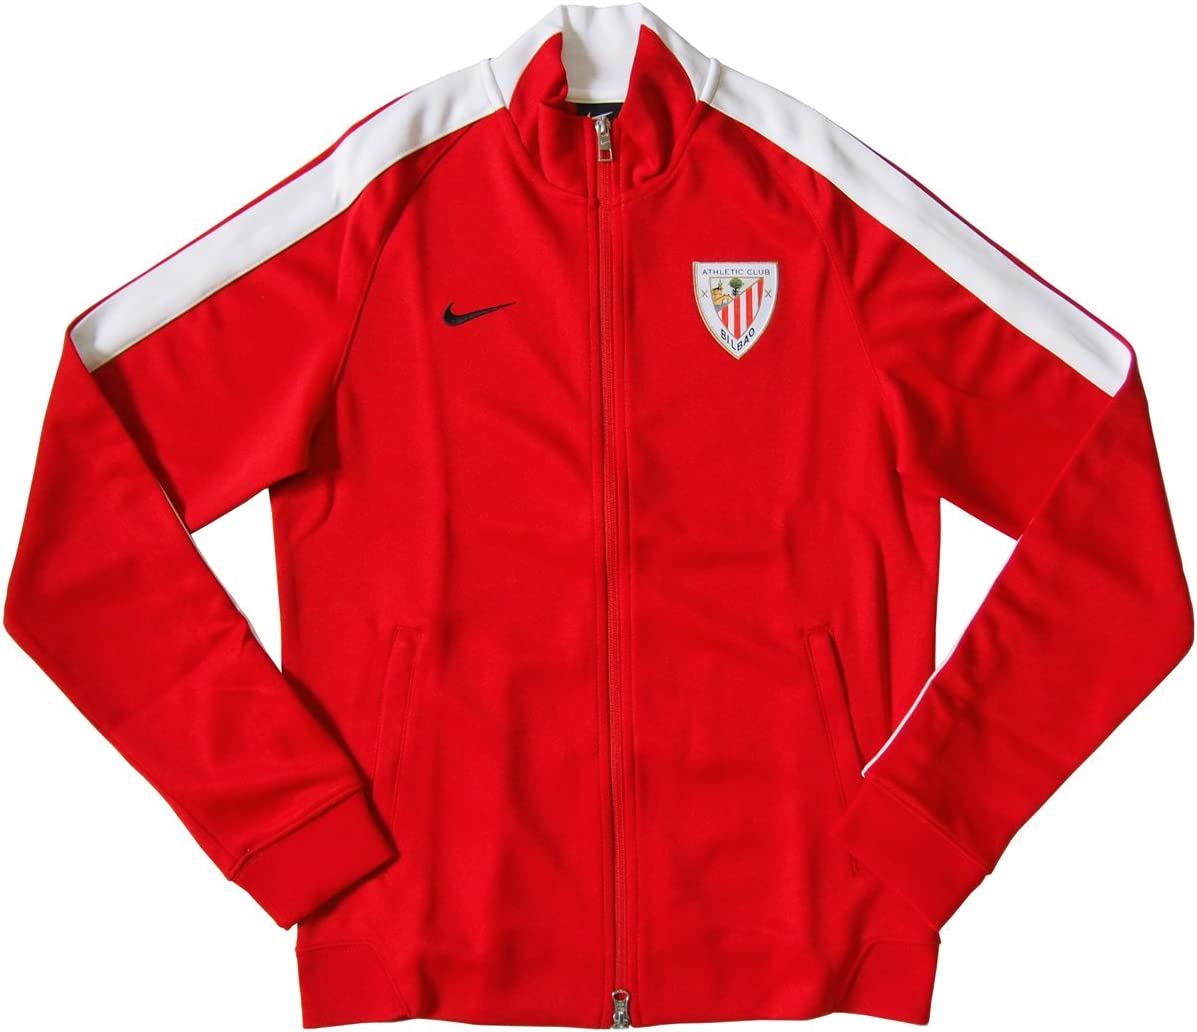 Nike Chaqueta Athletic Bilbao Authentic N98 2014-15: Amazon.es ...